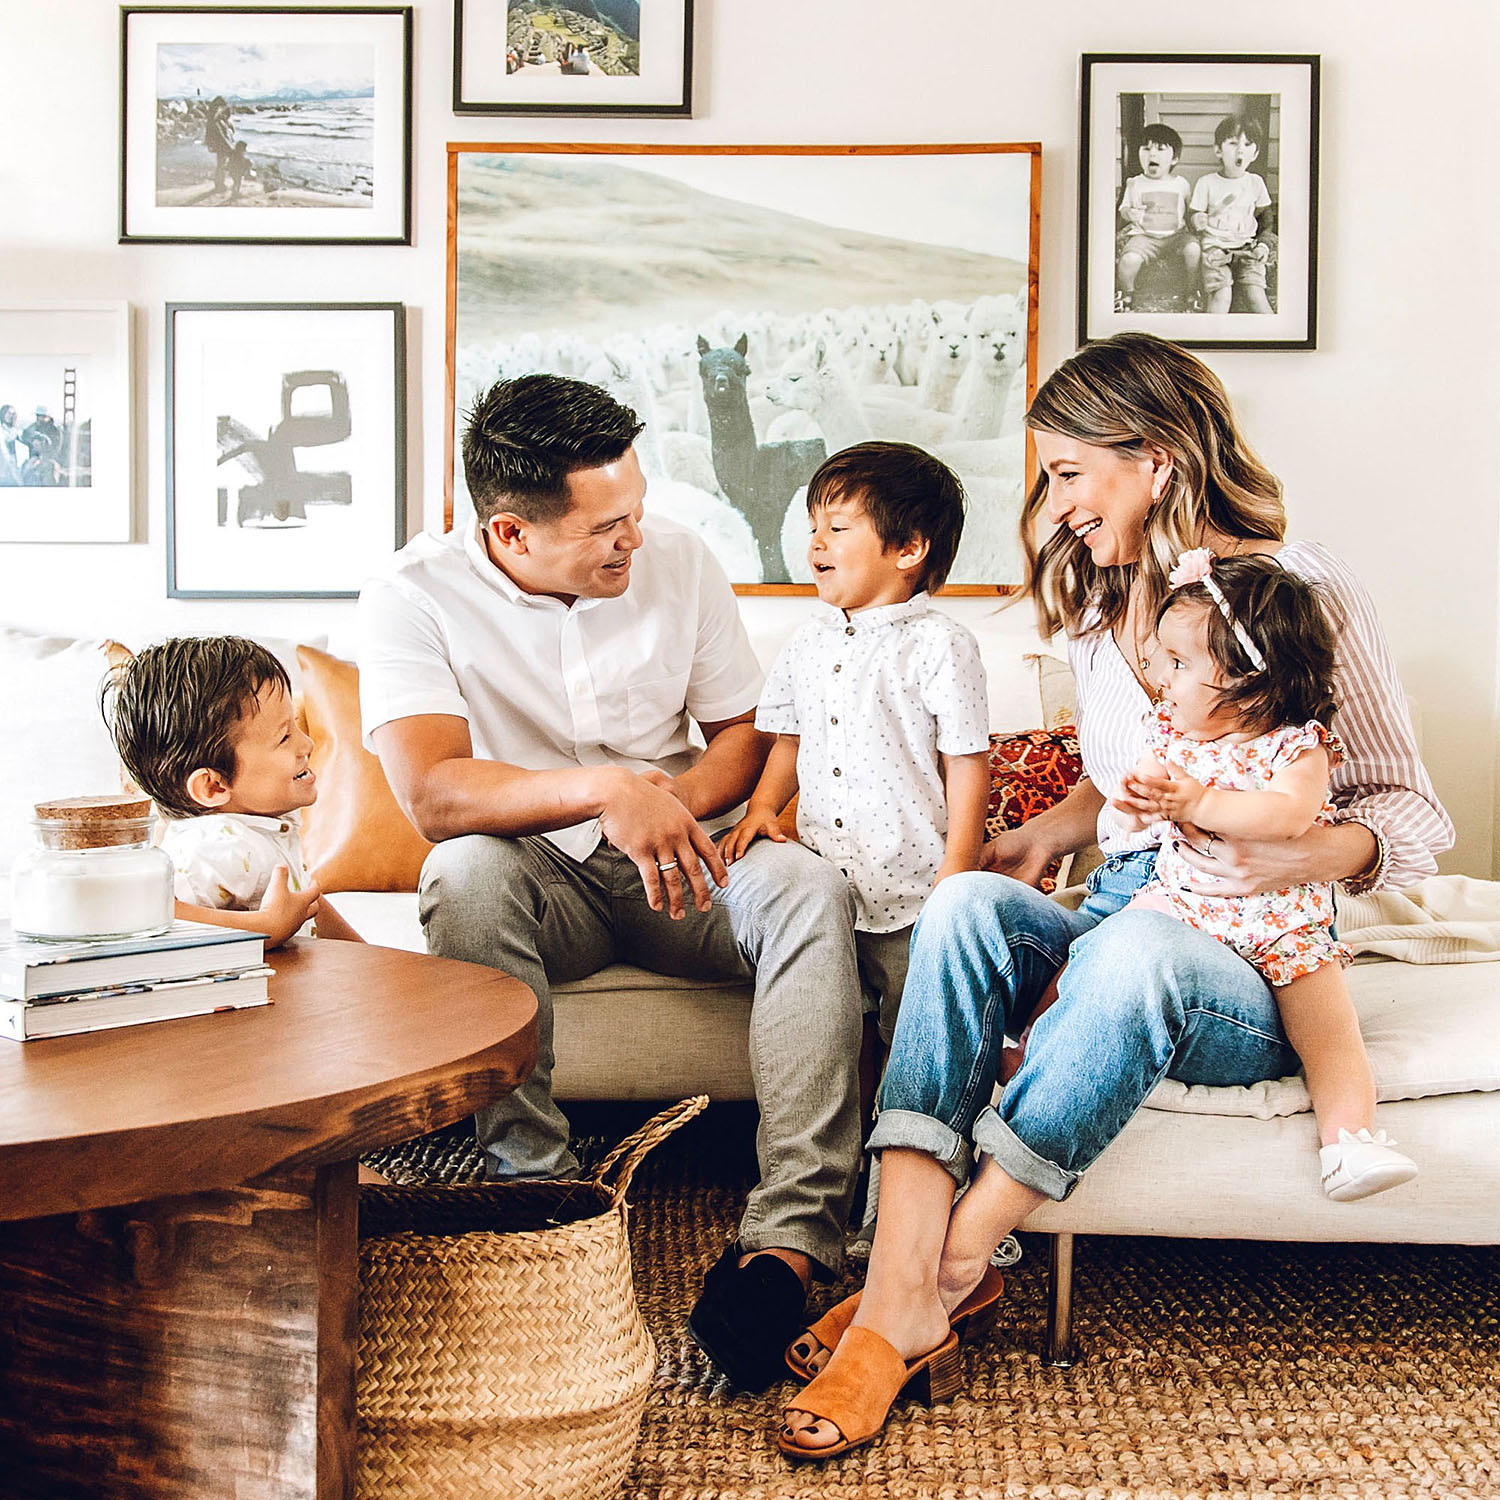 Jacobs family on couch in living room